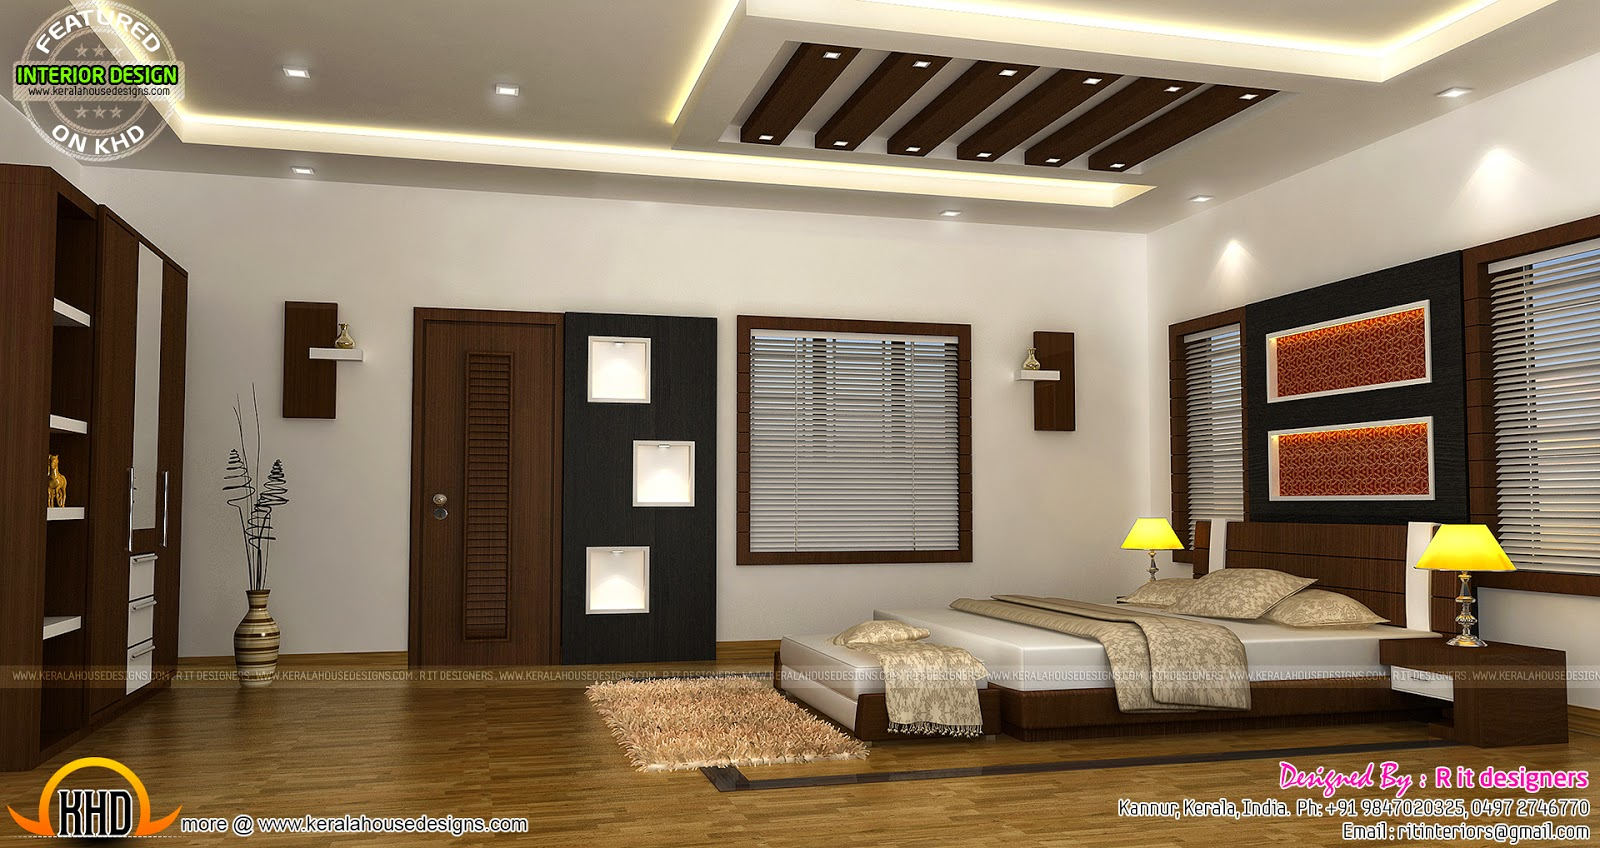 Bedroom interior design with cost kerala home design and for Bedroom interior design images